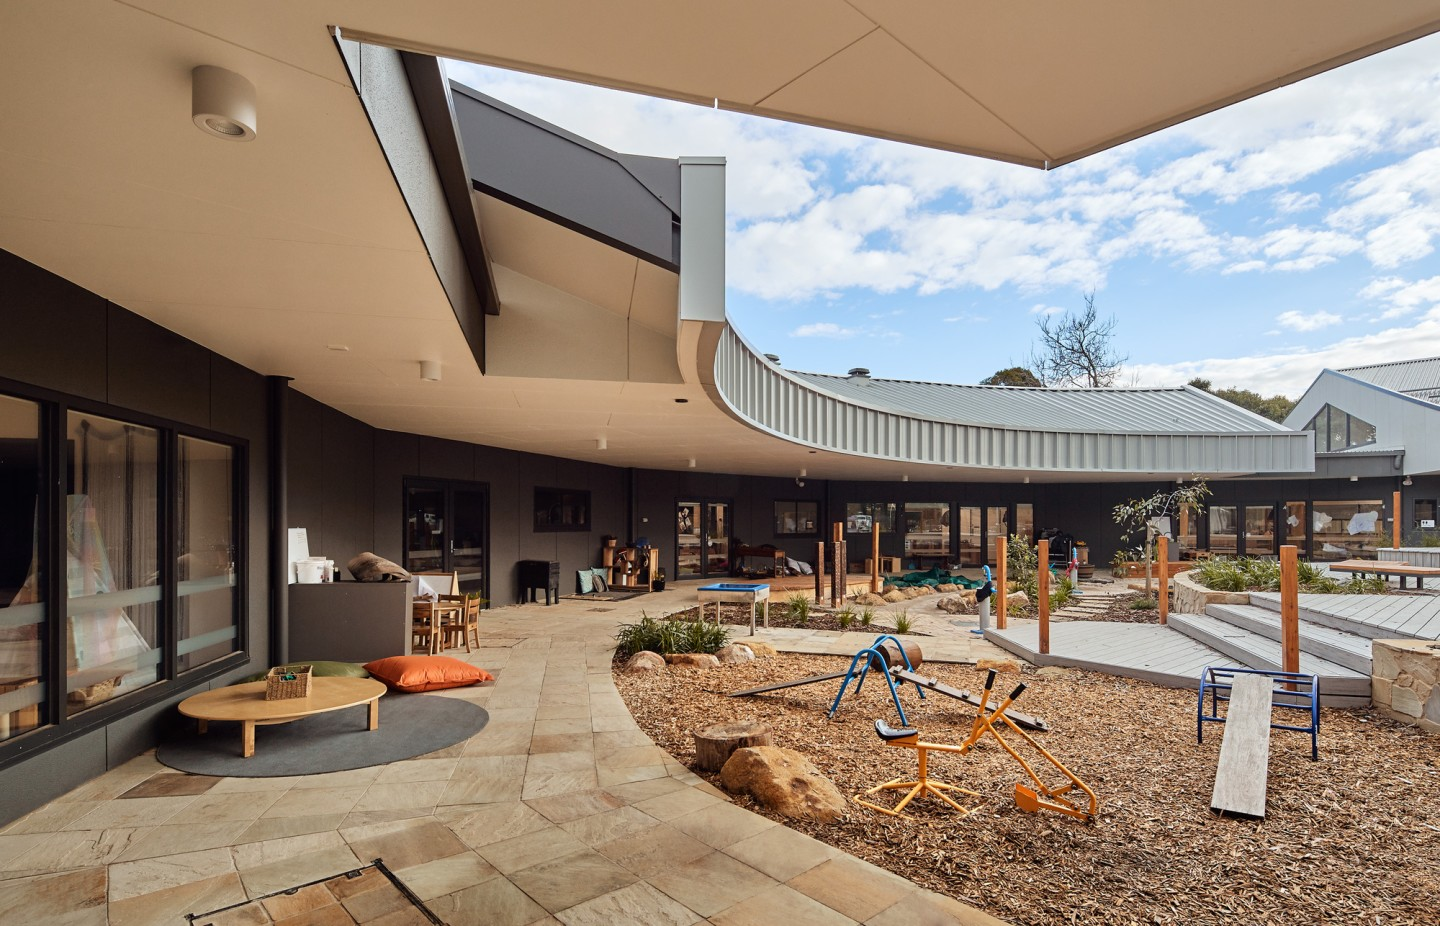 The Bayswater Early Years Hub's exterior has some shaded areas to relax while keeping an eye on the kids at play